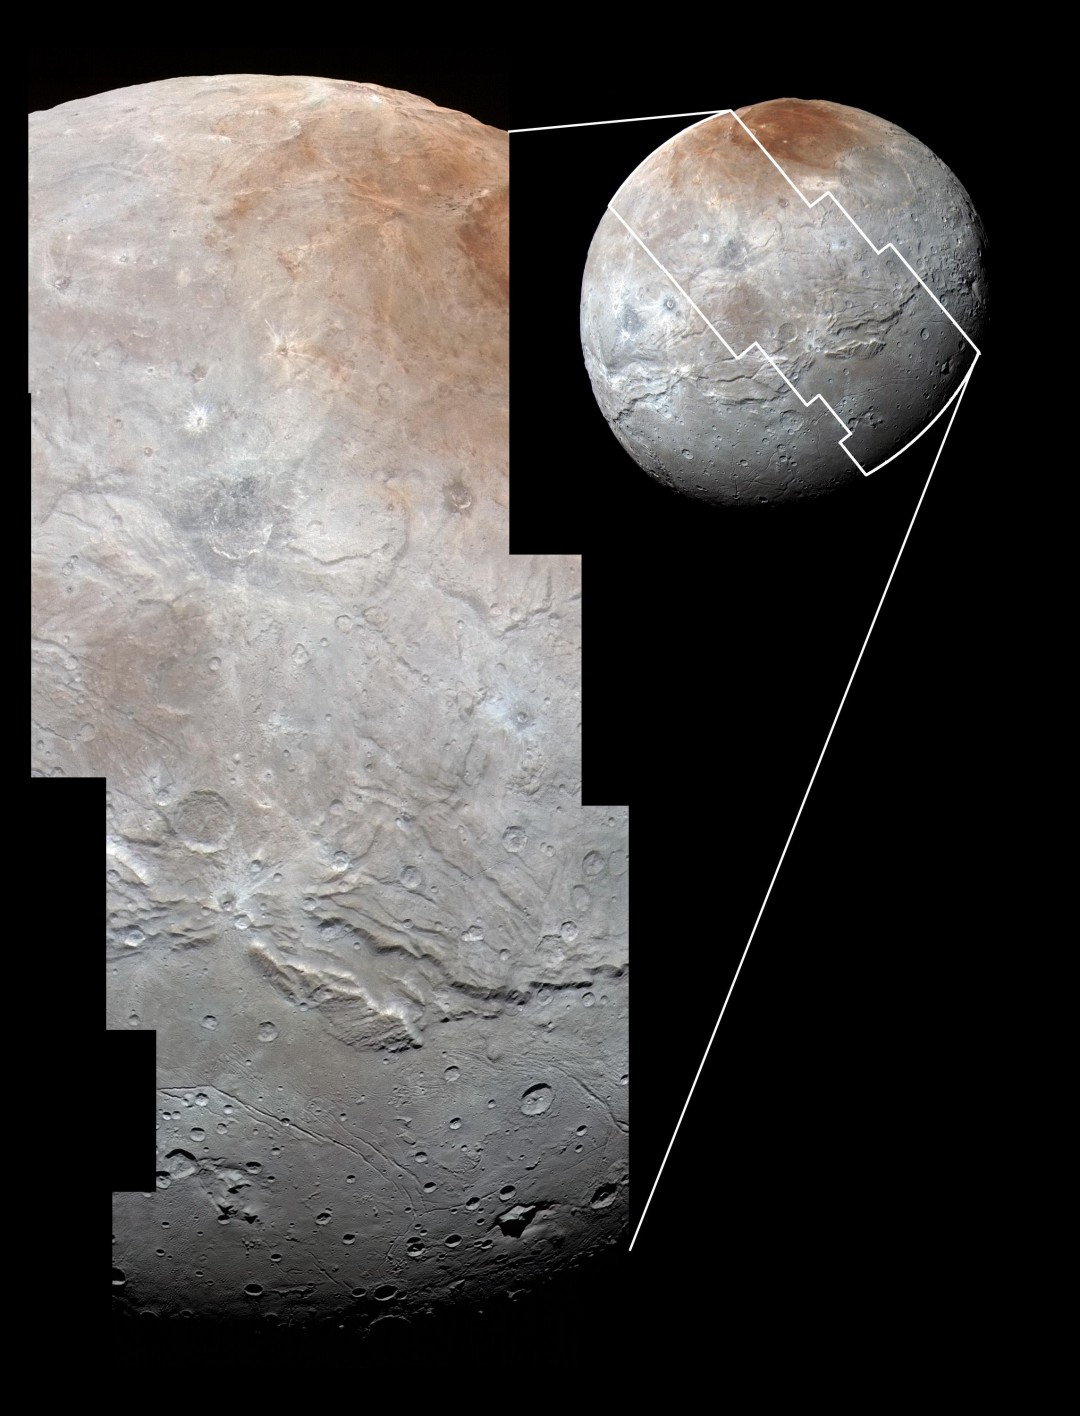 http://www.nasa.gov/sites/default/files/thumbnails/image/nh-charon-detail-9-29-15.jpg